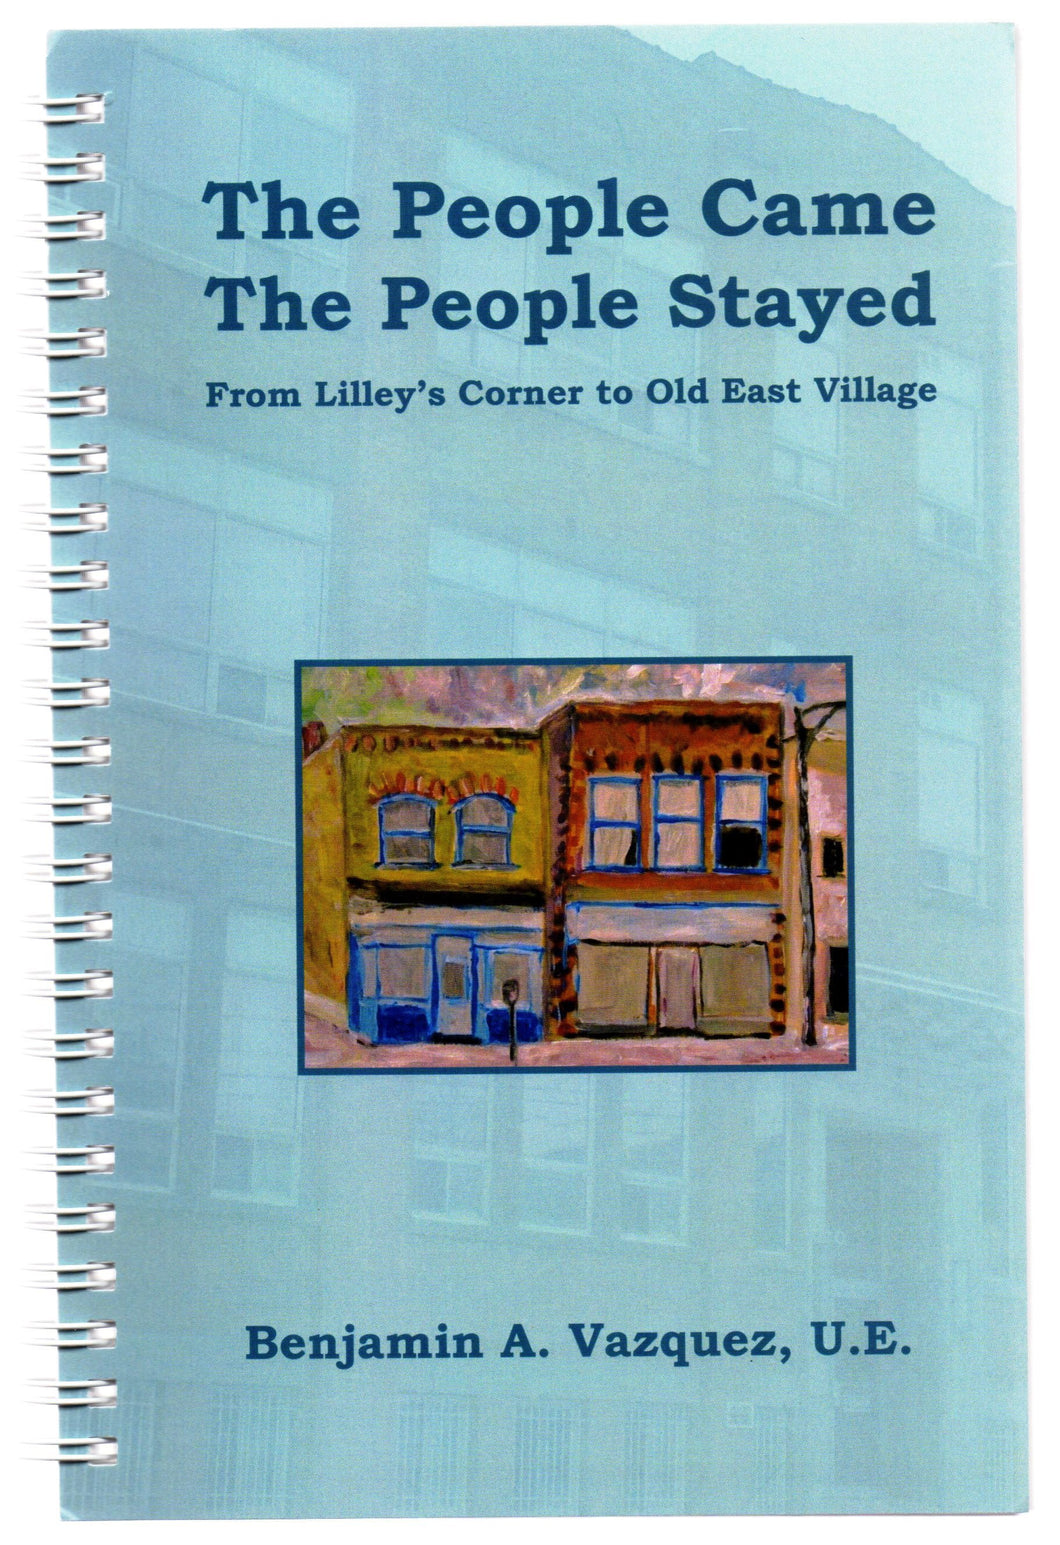 The People Came, The People Stayed: From Lilley's Corner to Old East Village